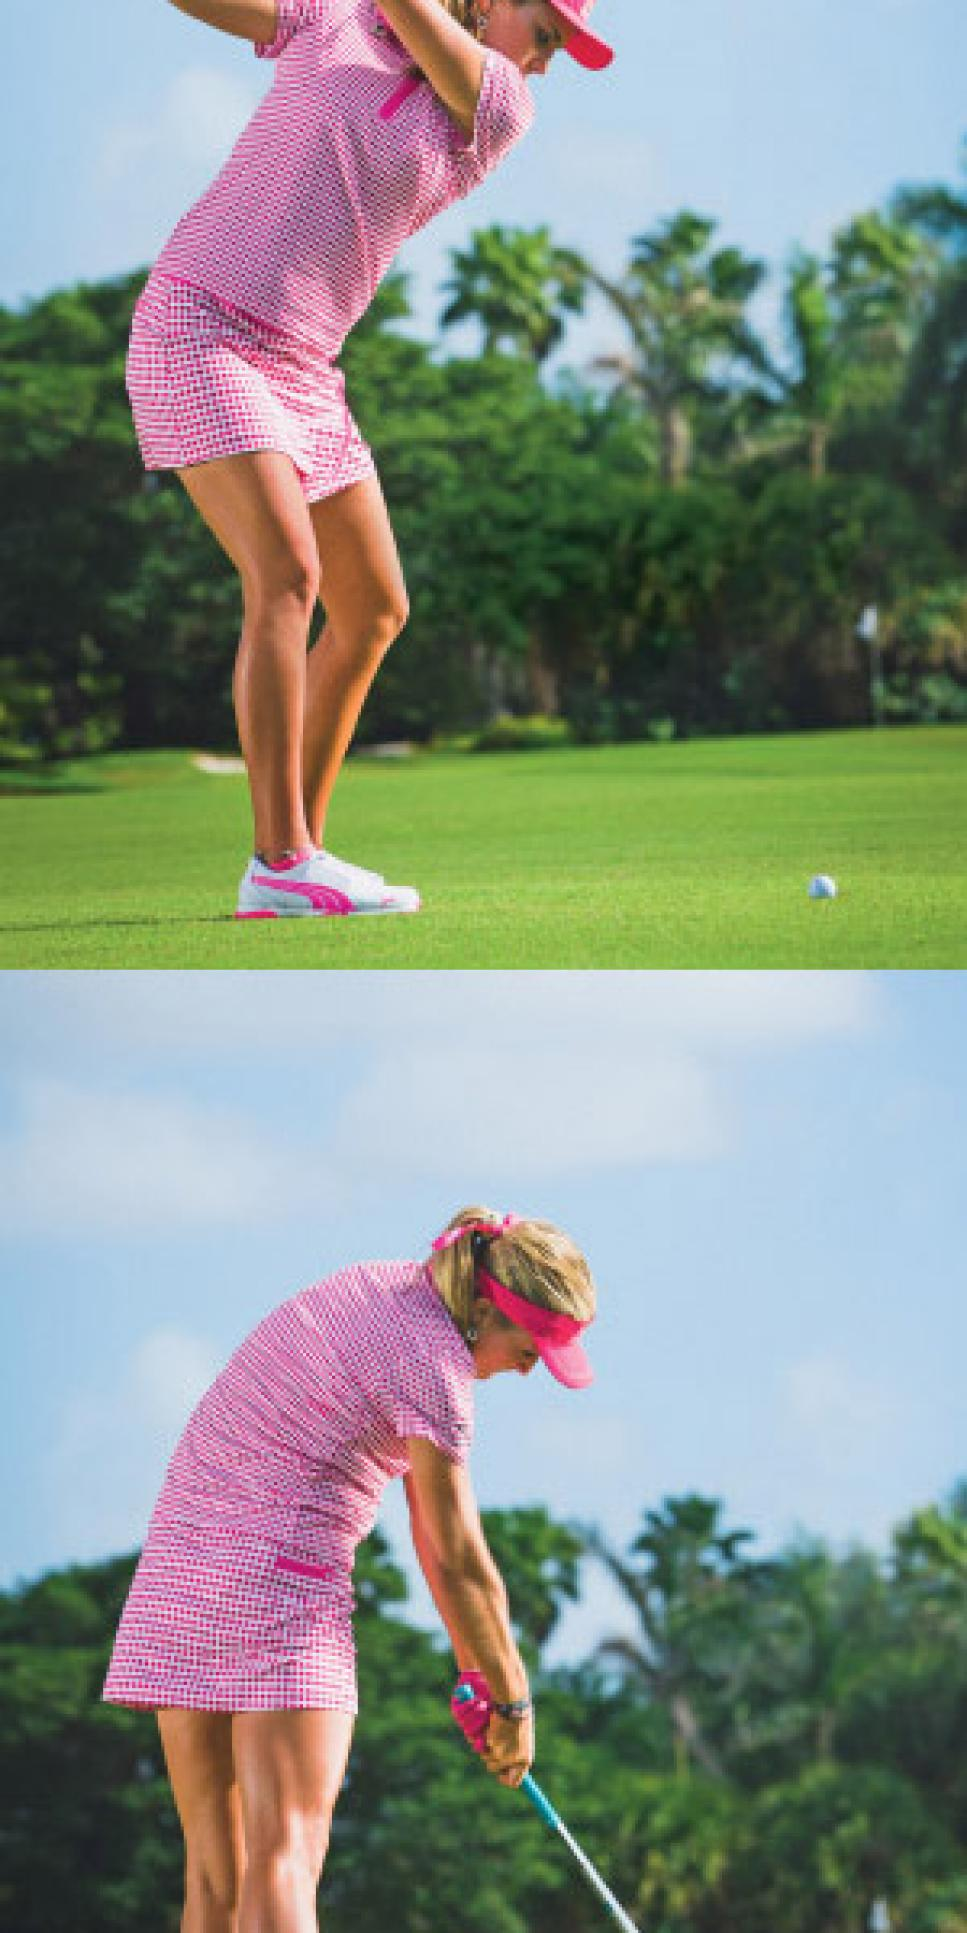 instruction-2014-07-inar01a-lexi-thompson.jpg